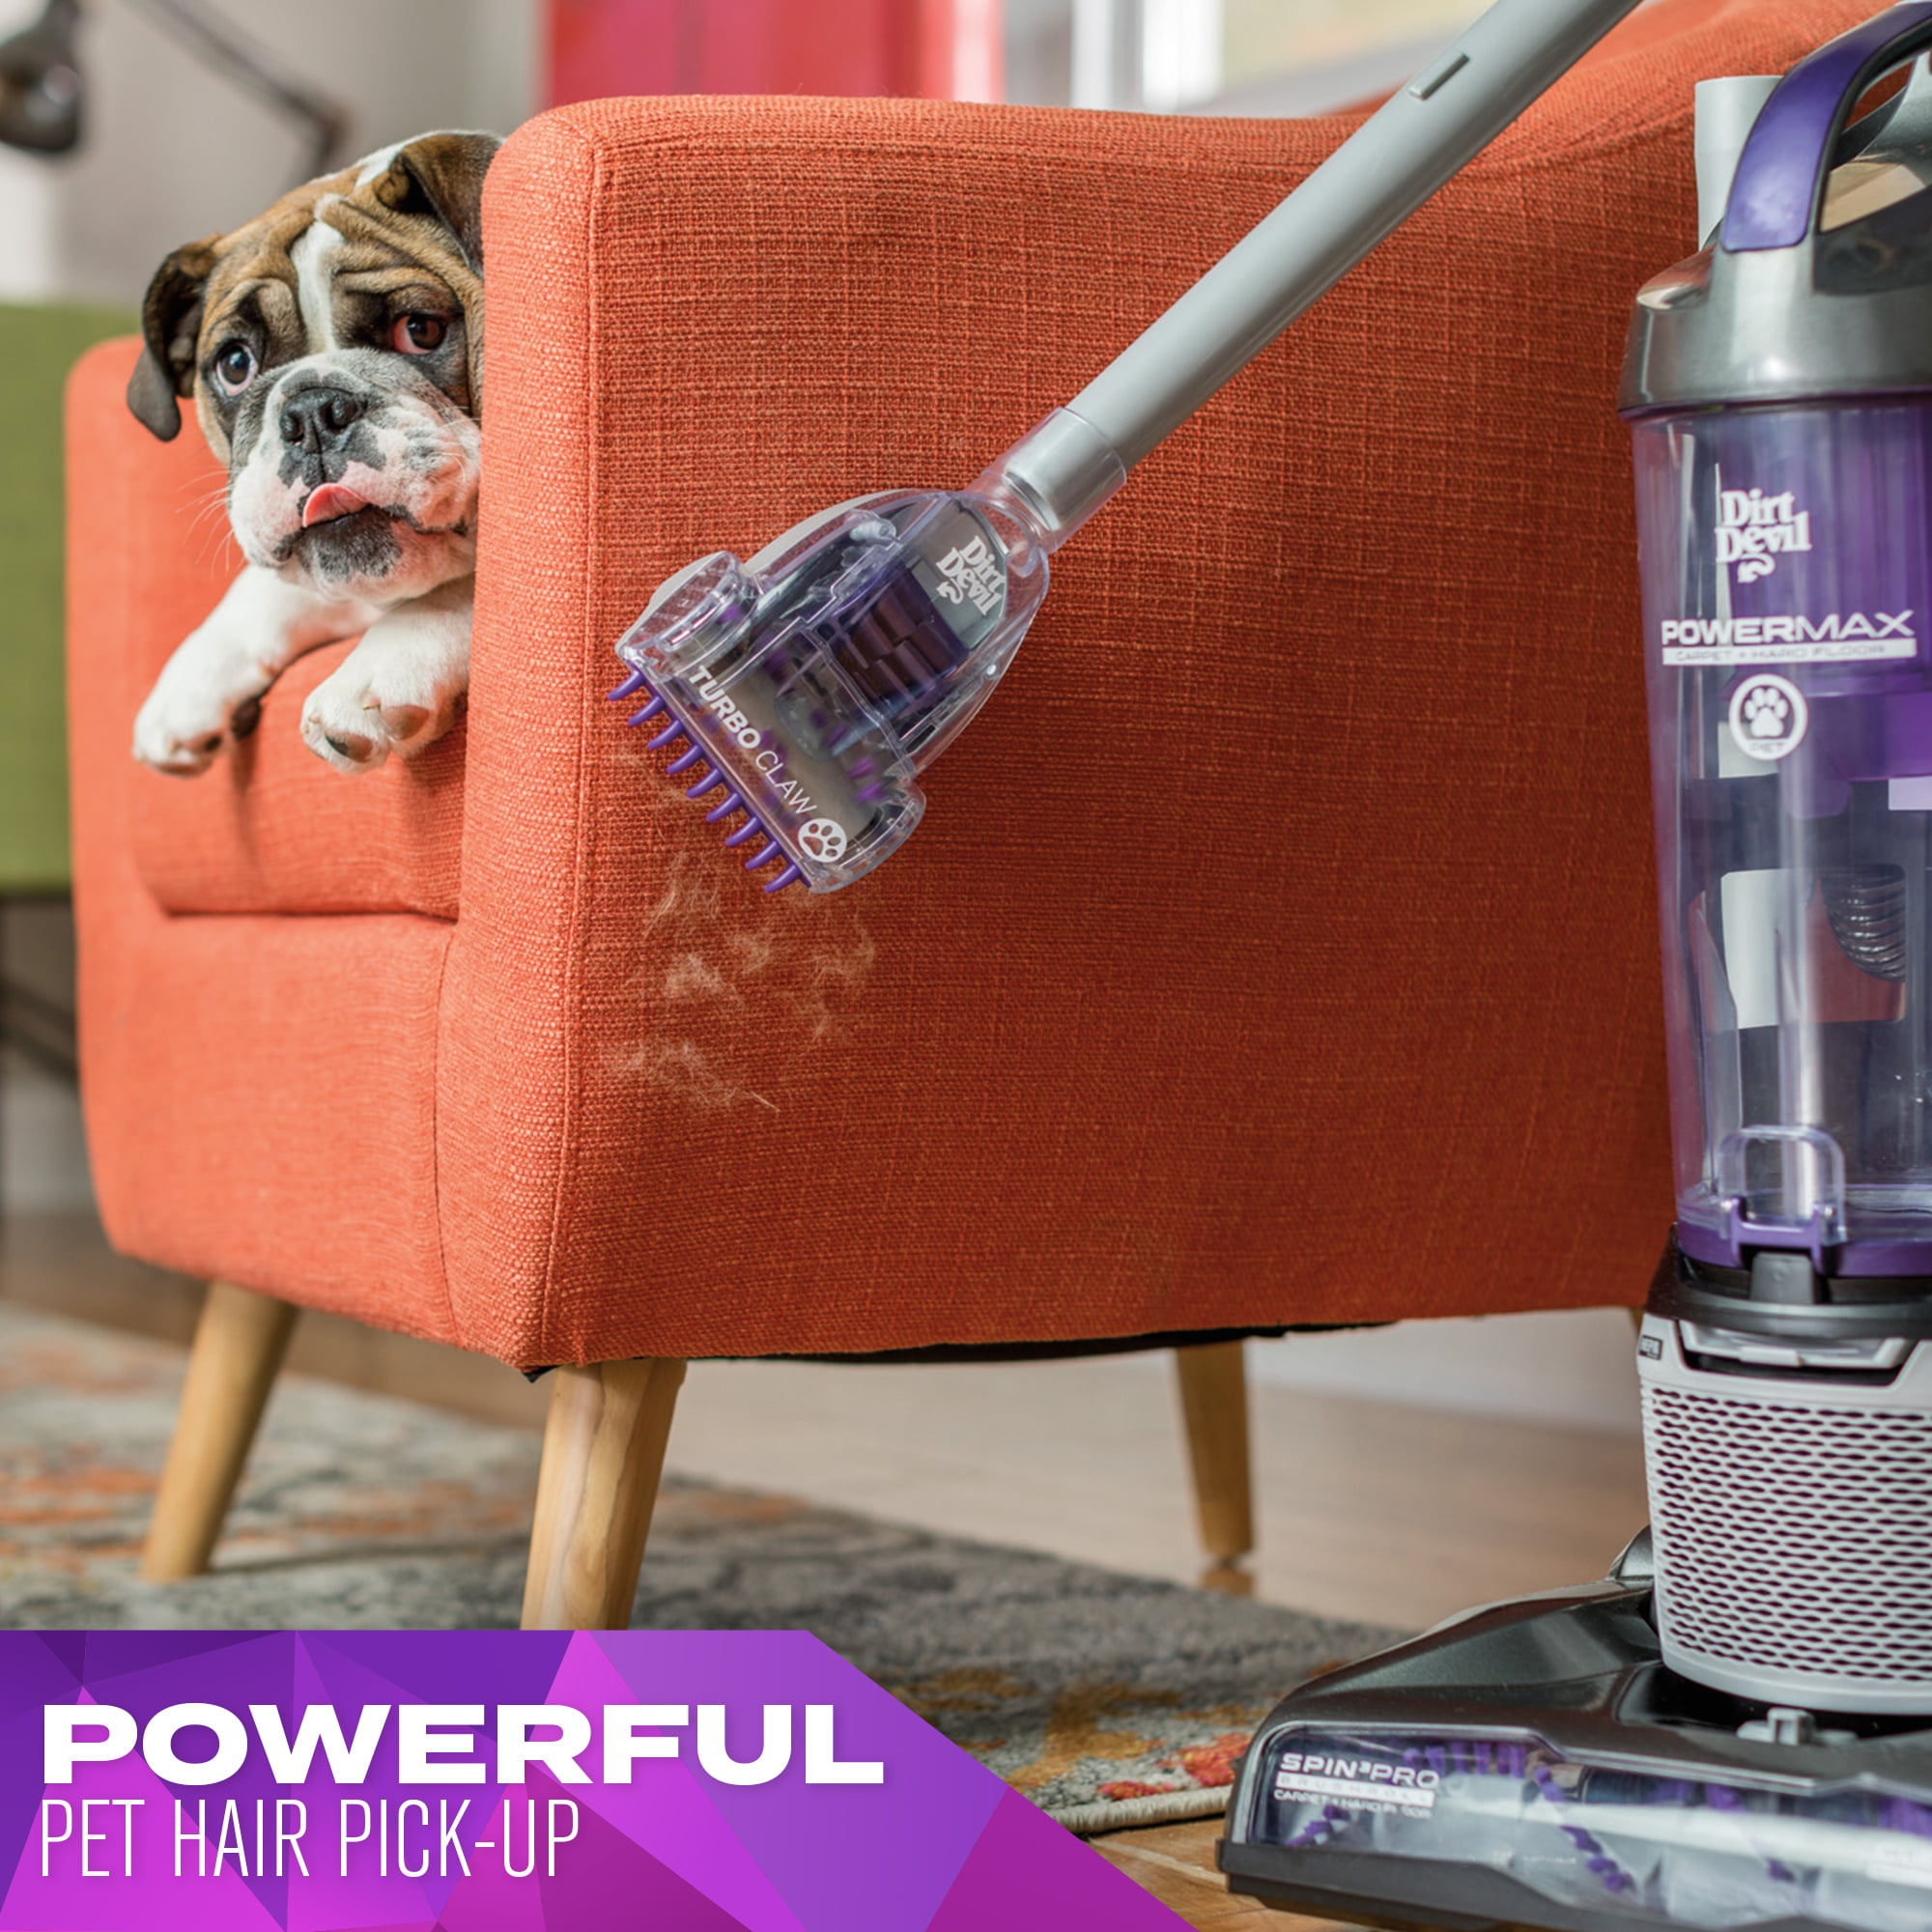 Dirt Devil Power Max Pet Bagless Upright Vacuum Ud70167p Walmart Com